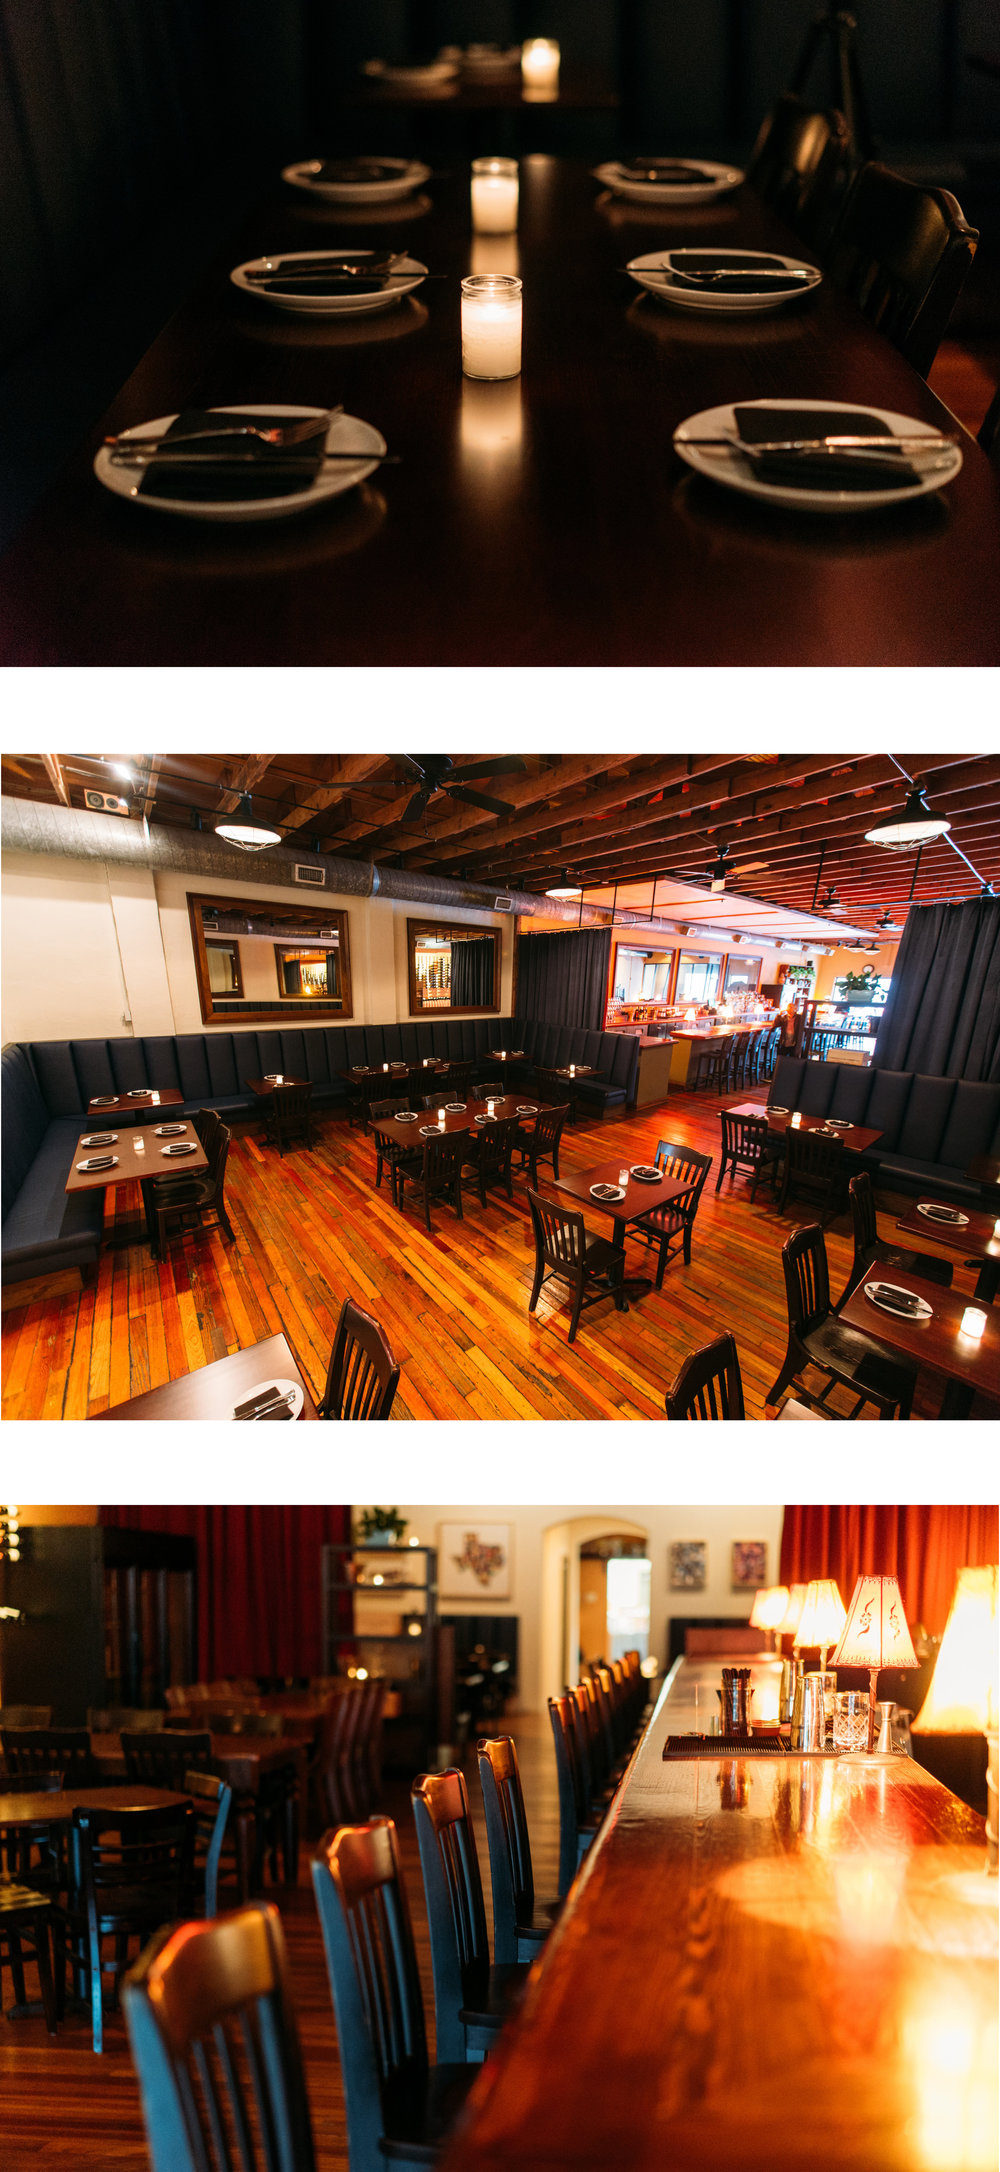 Events at Vino Vino - Private dining options ranging from 10-120 guests. Experience a thoughtfully curated bottle list and unique cocktails led by Advanced Sommelier Paul Ozbirn, with imaginative, locally sourced menus to pair.Email to start planning today! Dining RoomSemi-private dining room in the rear of the restaurant sectioned off by velvet curtainsCapacity: 40North Dining RoomNorth half of the semi-private dining room spaceCapacity: 20South Dining RoomSouth half of the semi-private dining room spaceCapacity: 24Restaurant BuyoutExclusively private restaurant rental including bar, dining room, and wine gardenCapacity: 90 seated or 120 standingWine GardenIntimate, private wine garden patioCapacity: 15 seated or 20 standing